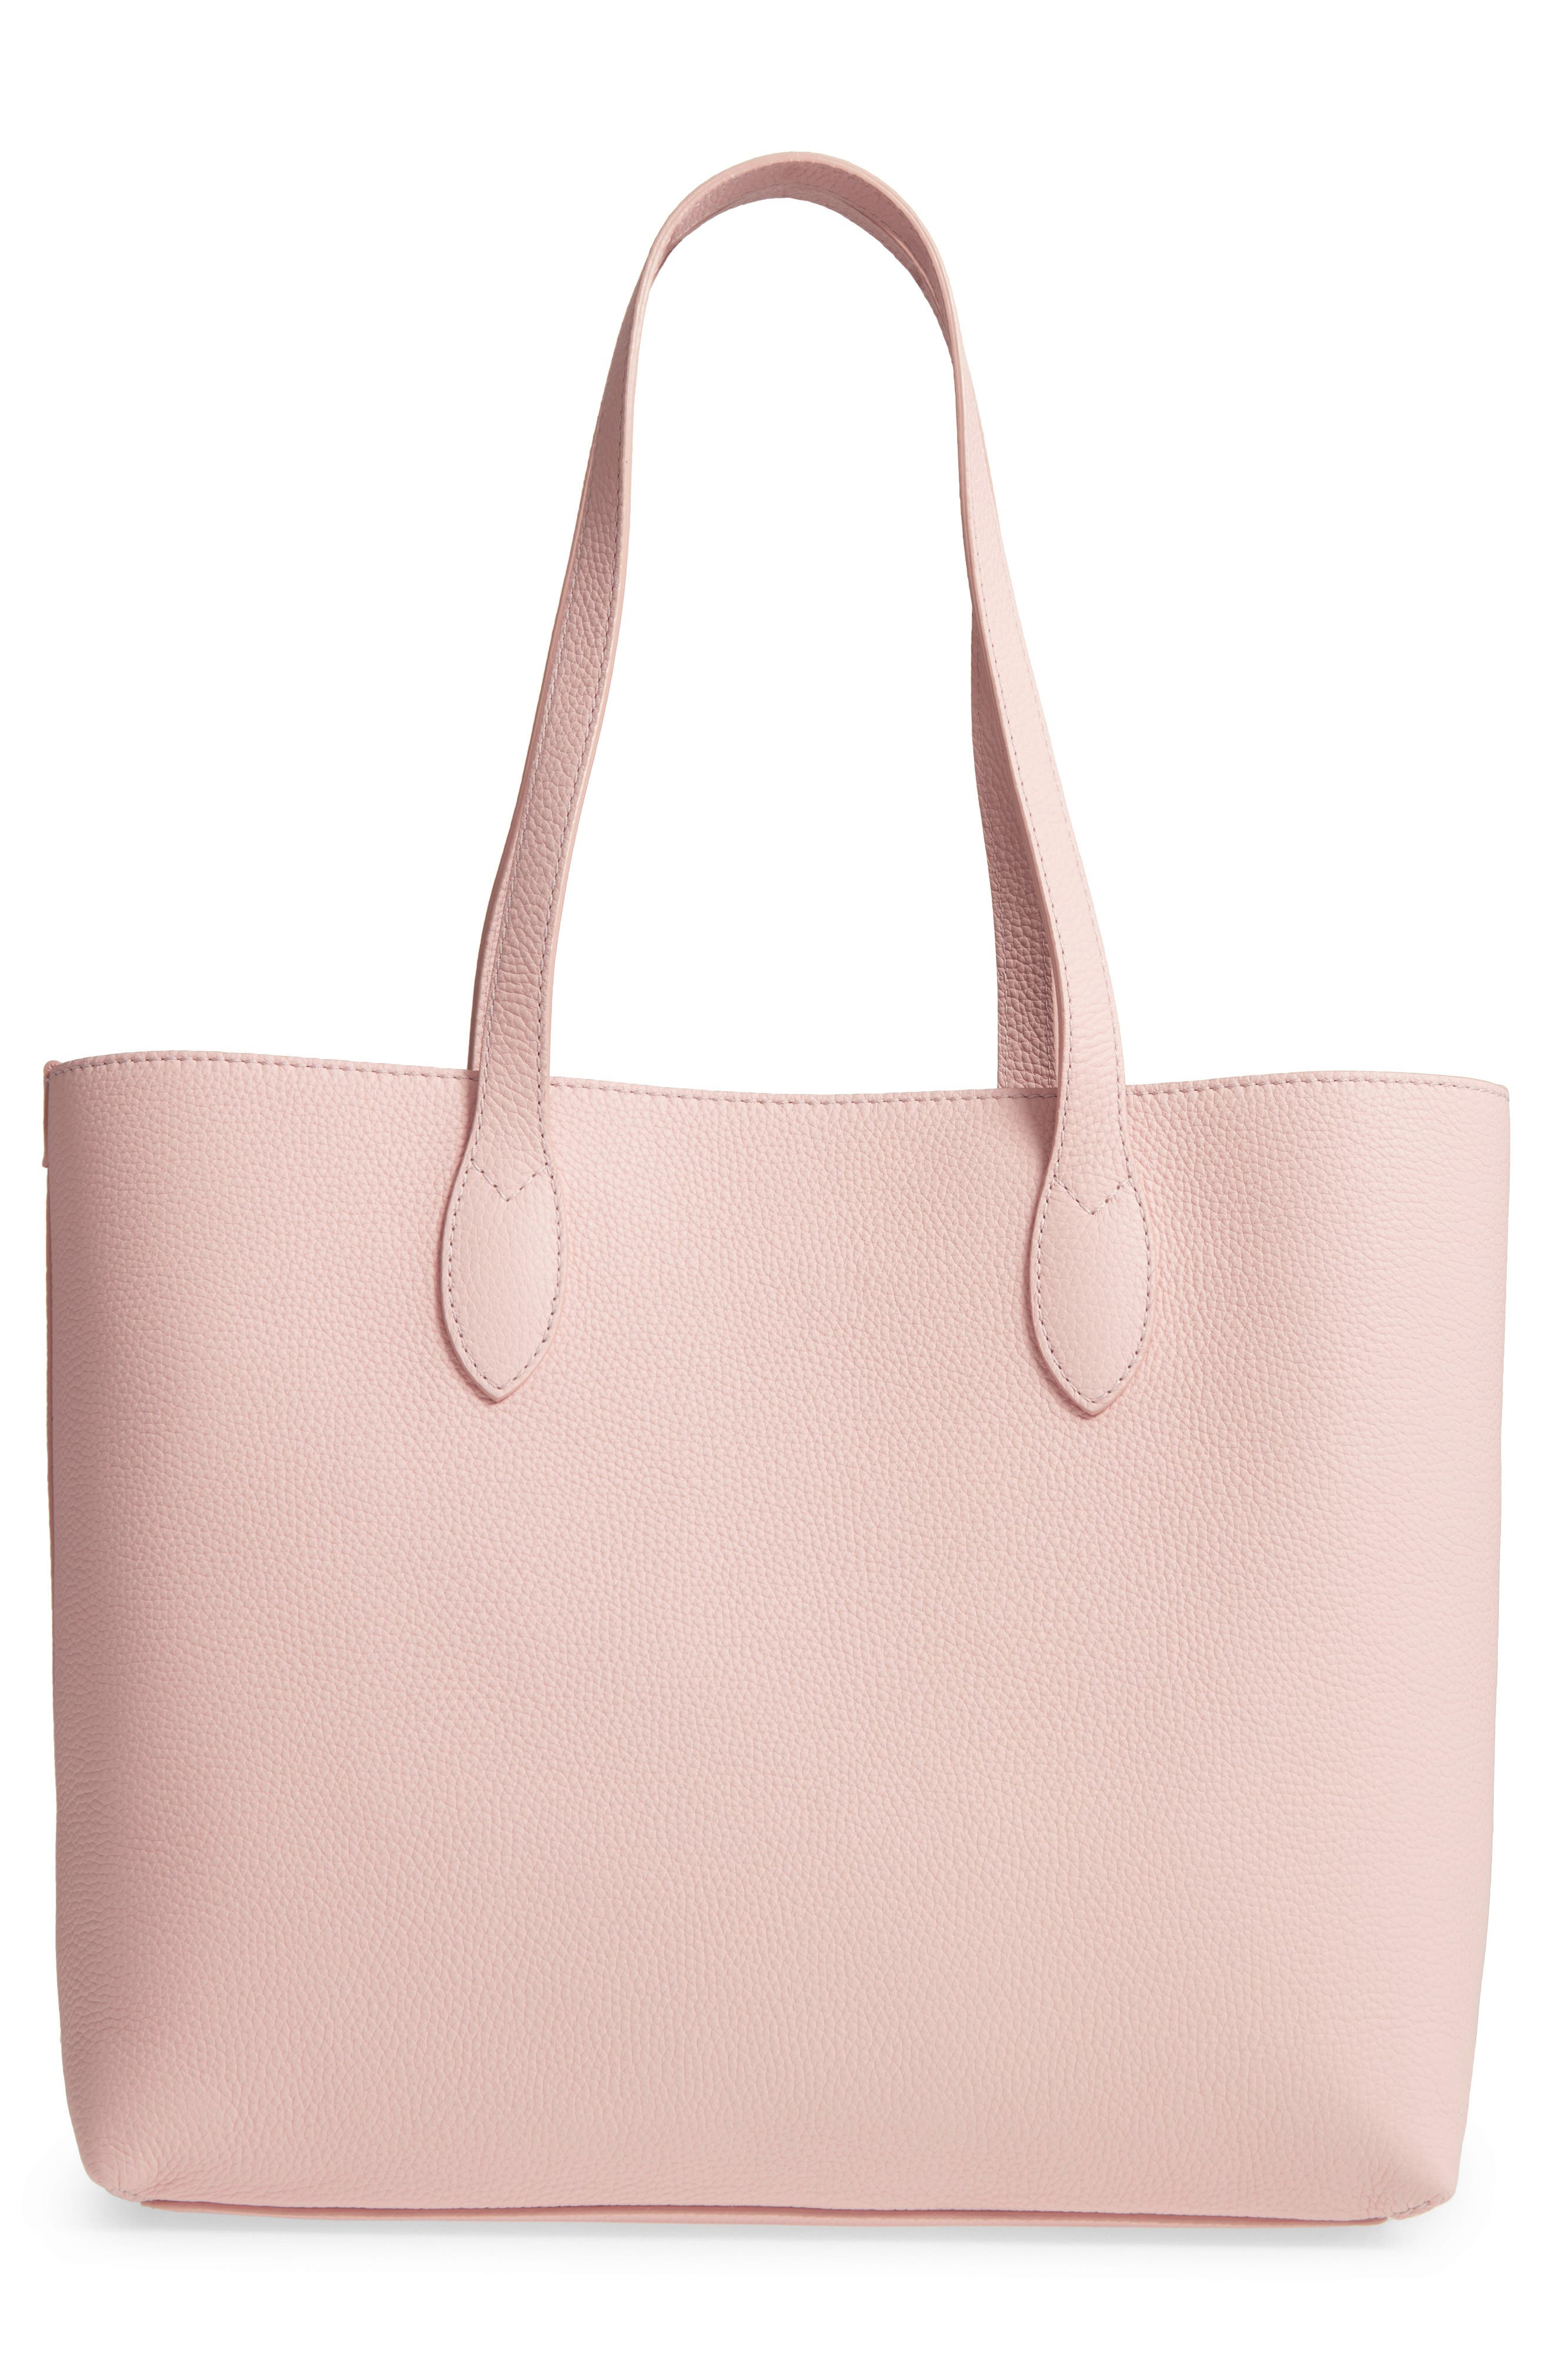 Remington Leather Tote,                             Alternate thumbnail 2, color,                             Pale Ash Rose